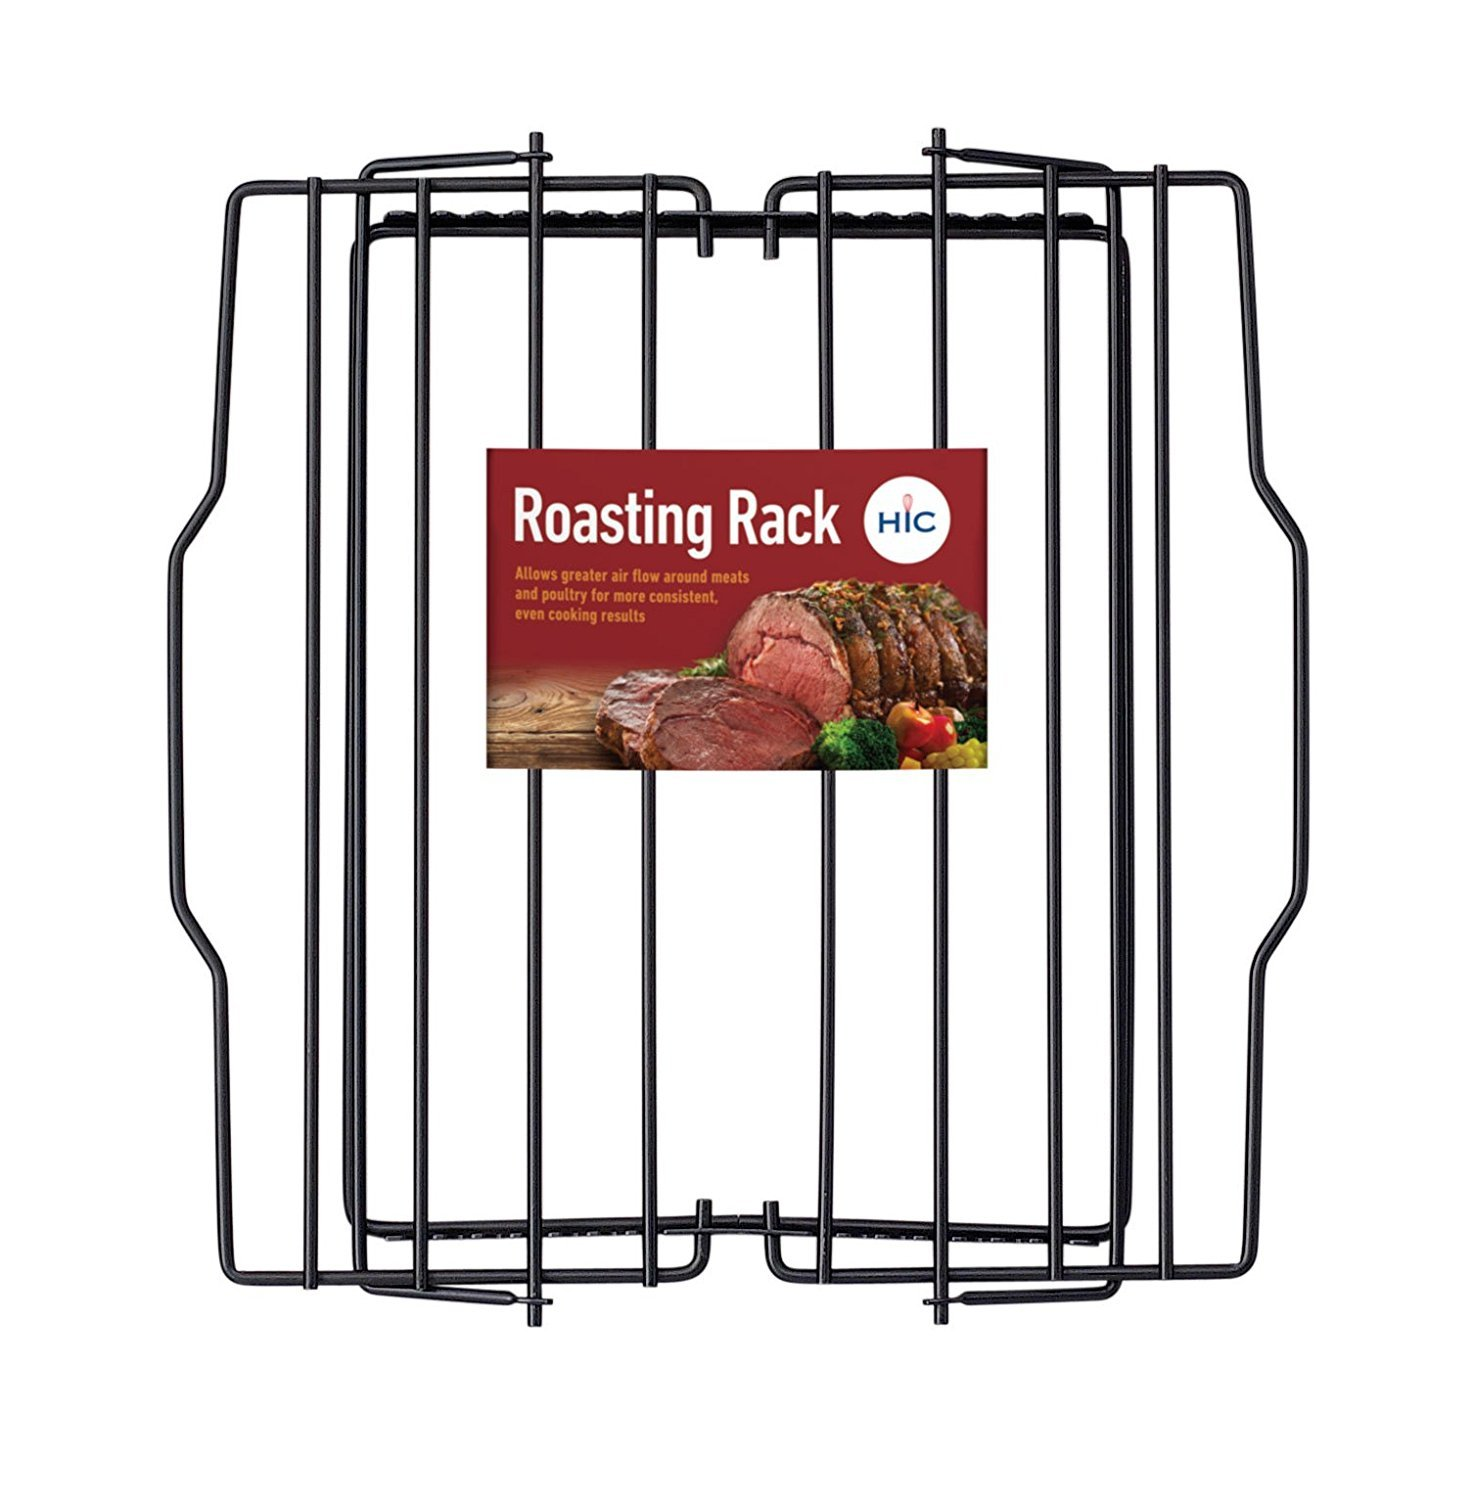 HIC Harold Import Co. 43183 Adjustable Wire Roasting Rack, Nonstick